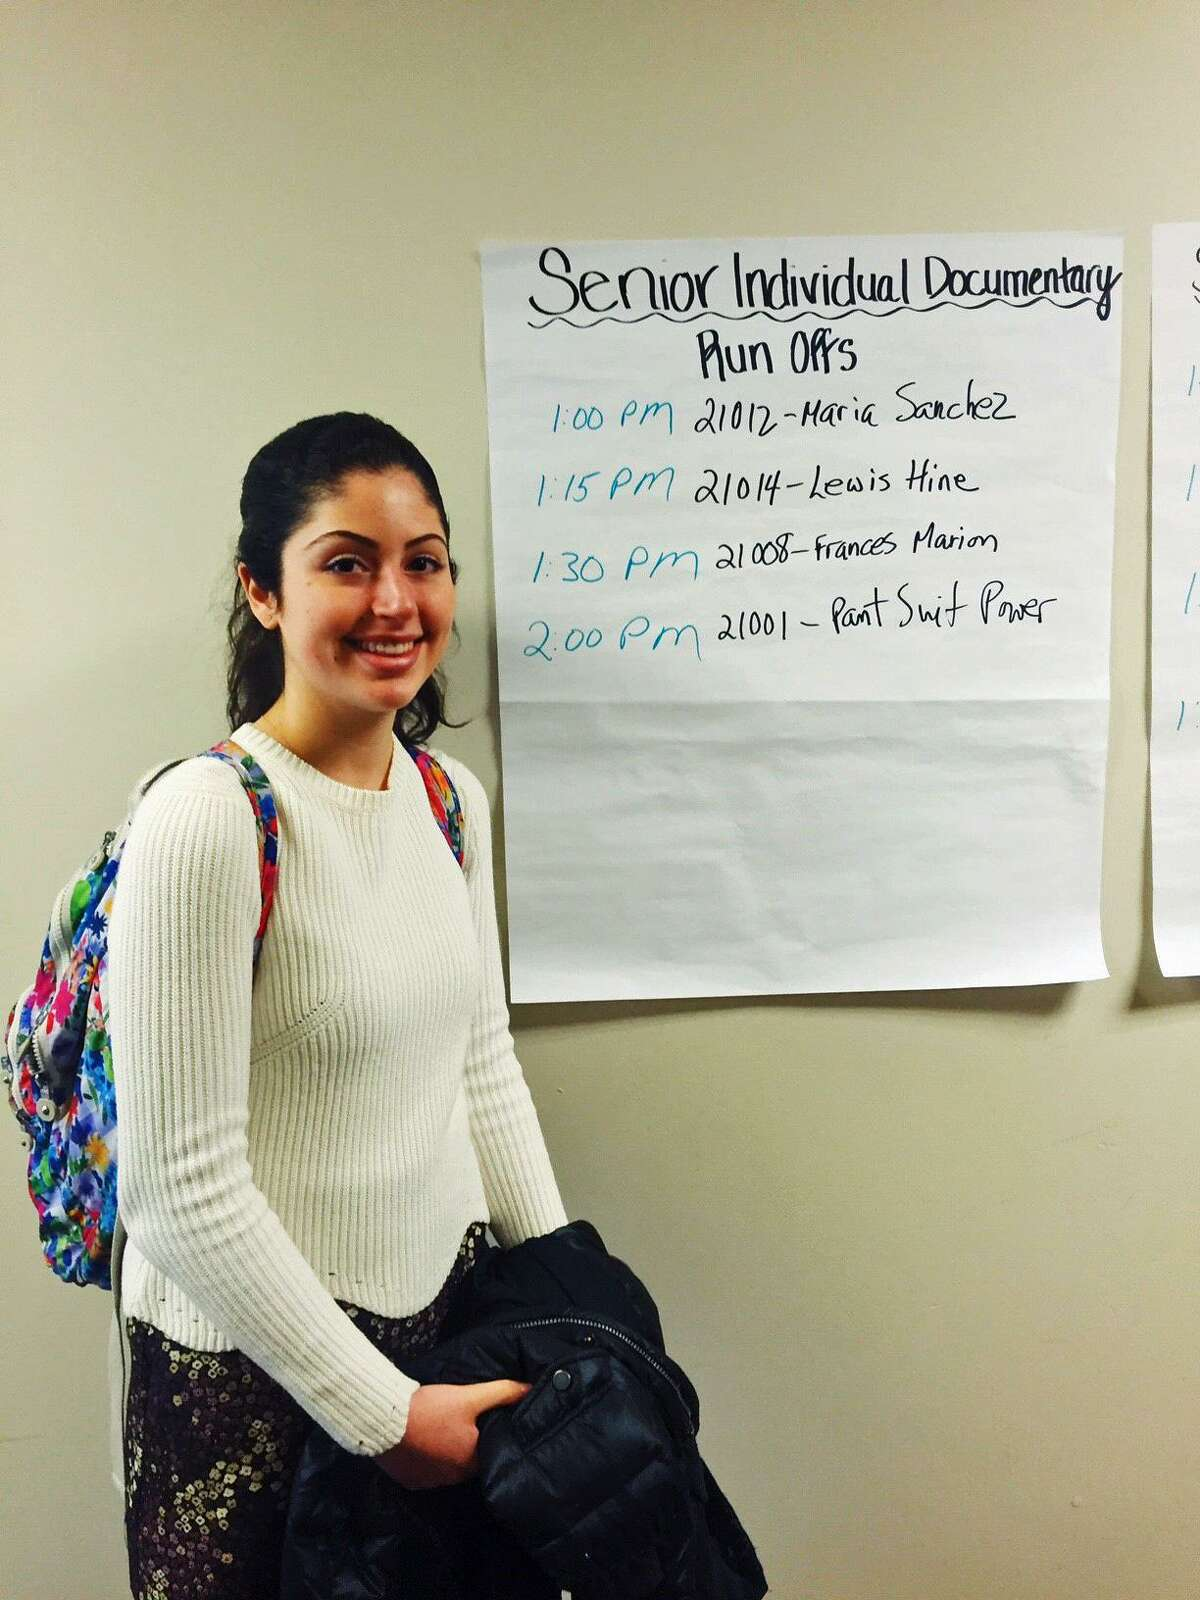 Greenwich High junior Kathryn Papas, an Innovation Lab student, scored second place for her individual documentary,